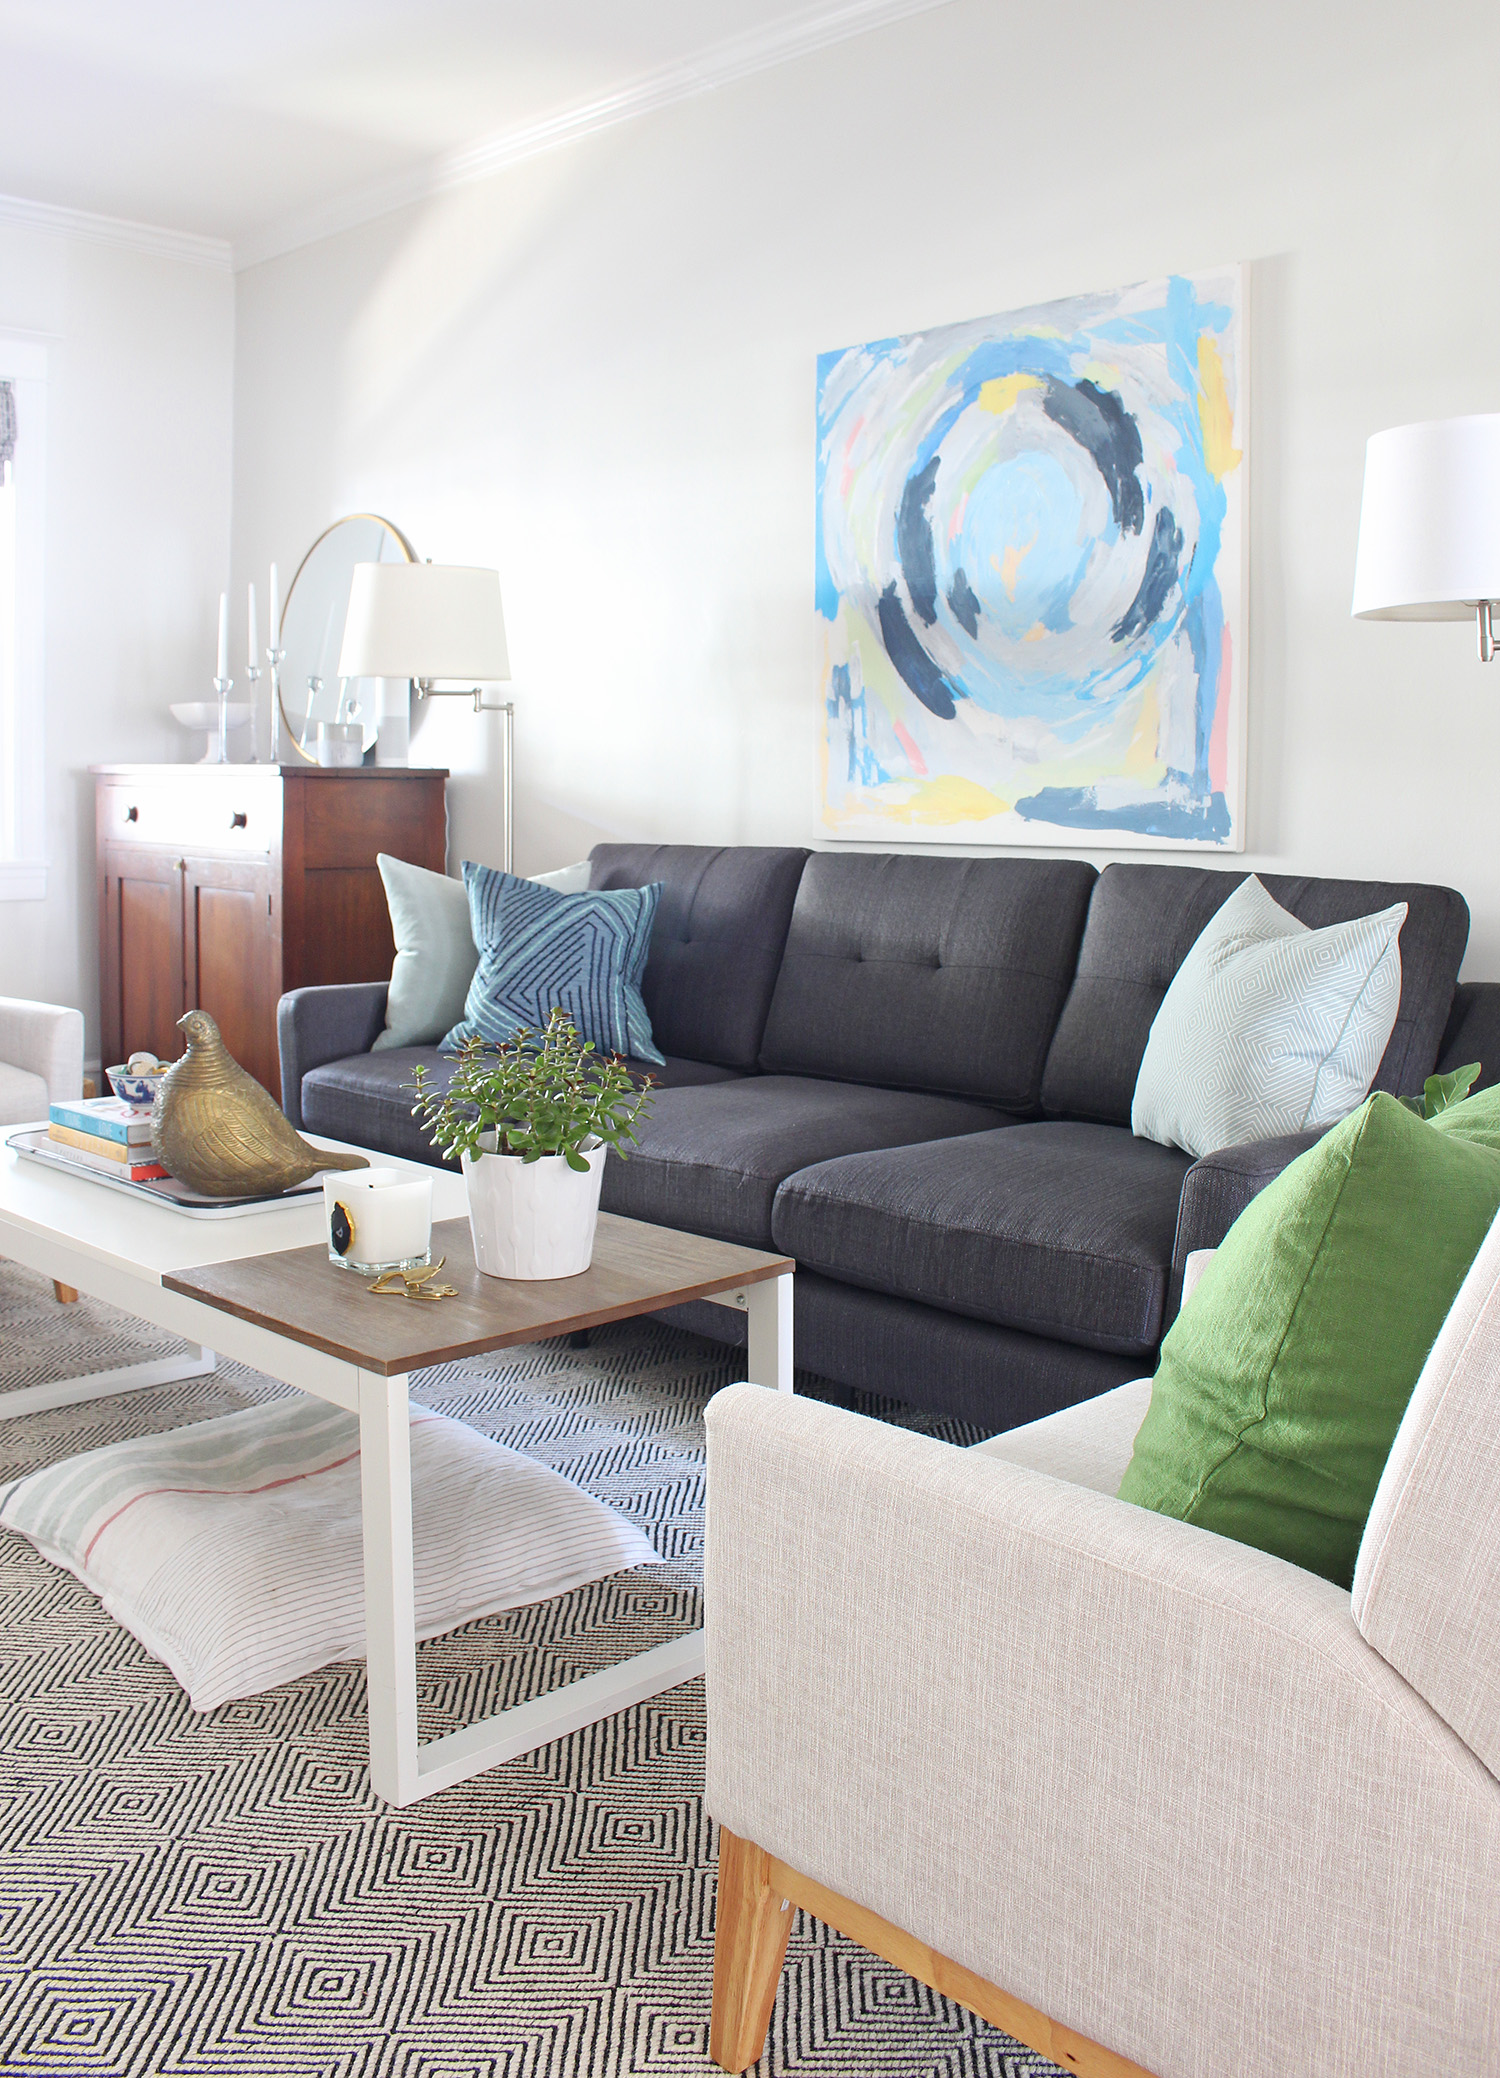 Burrow sofa in charcoal in this mid-century modern eclectic living room. Enter code MIXANDMATCH at checkout to get $50 off of your purchase!